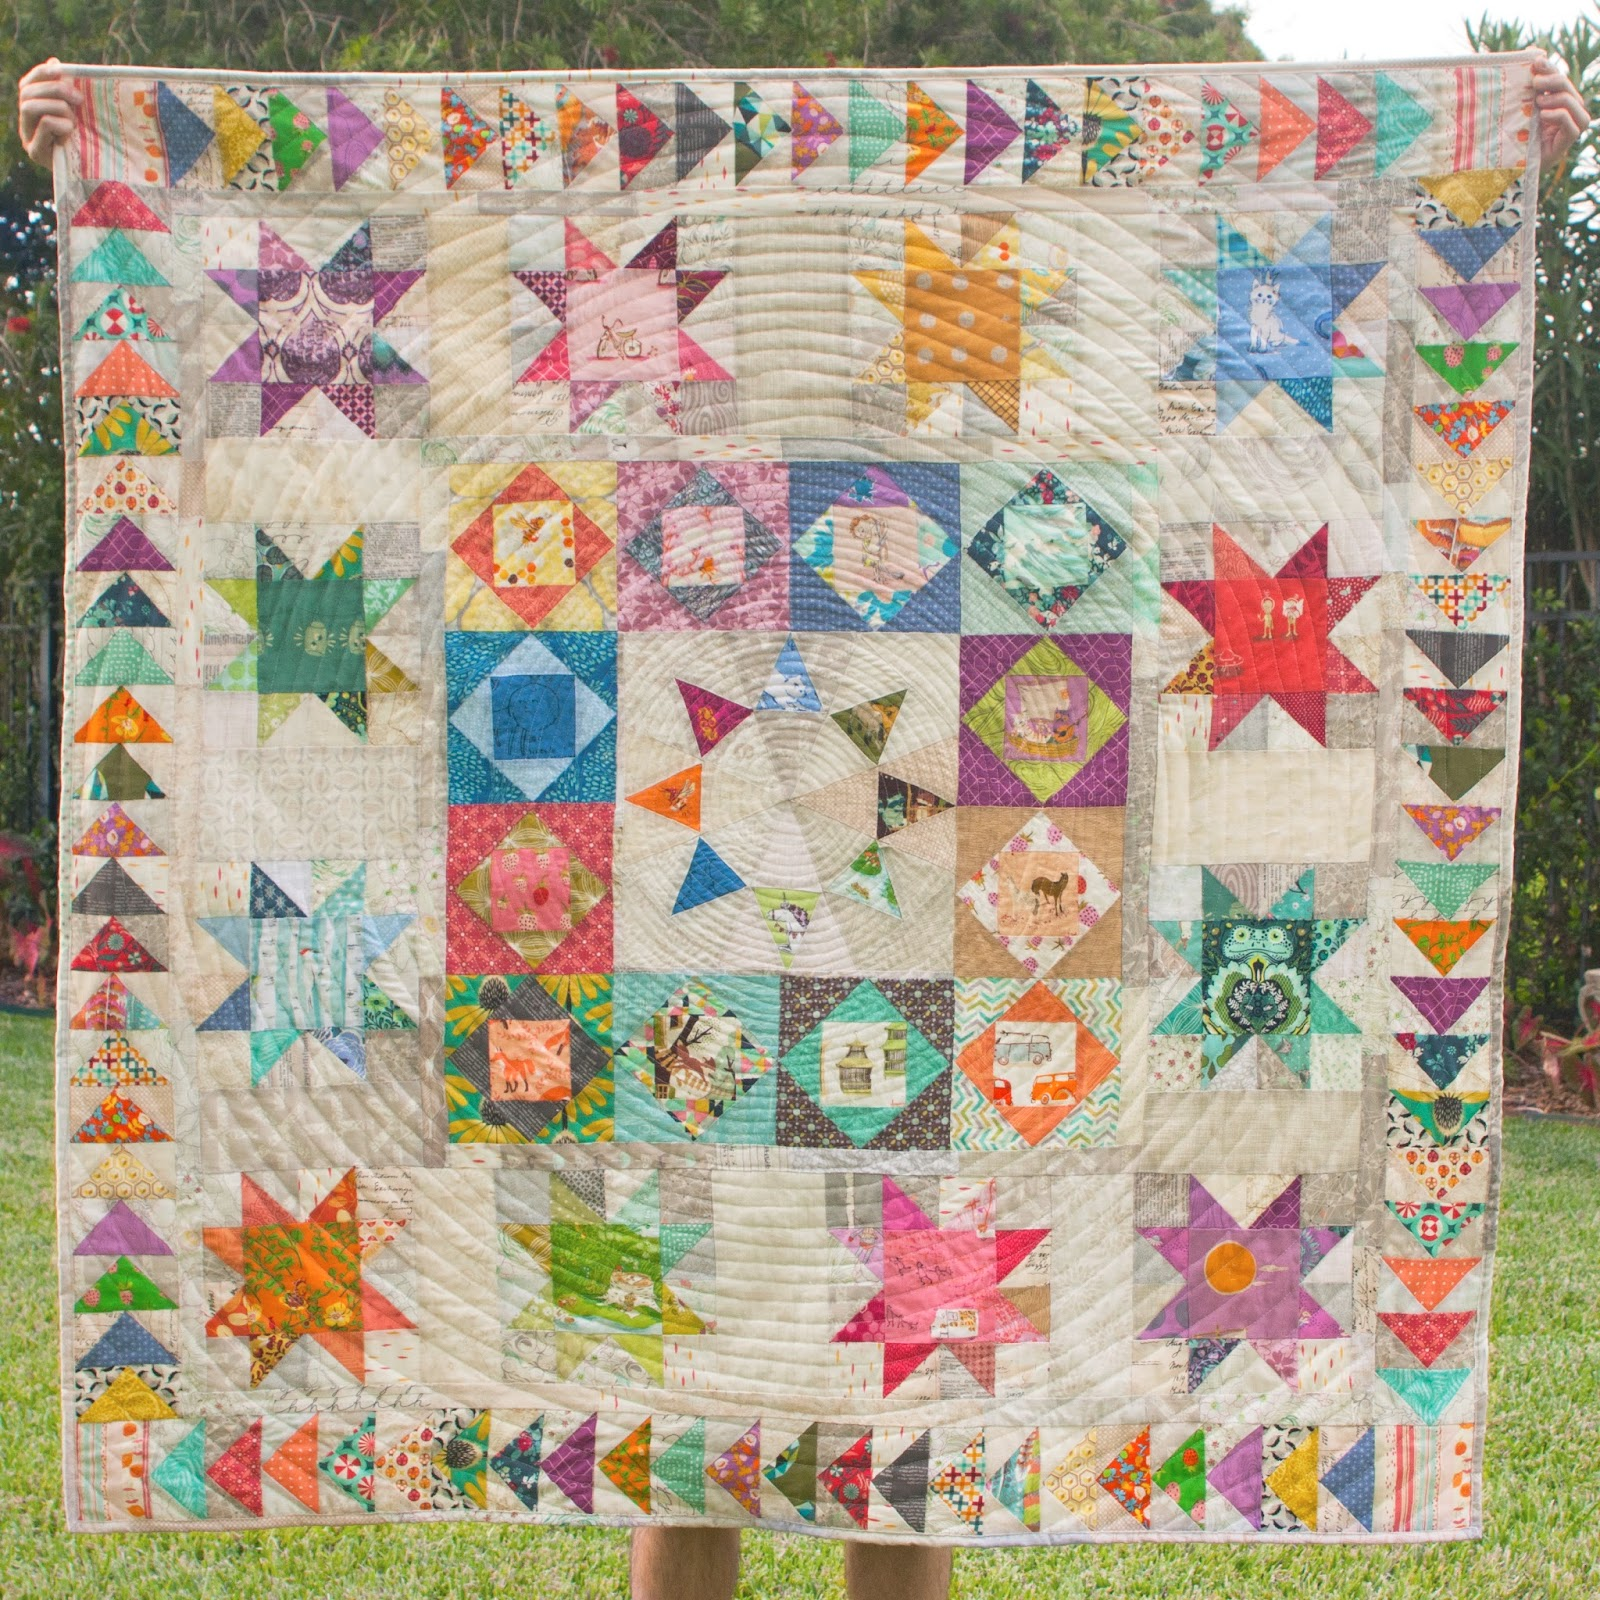 arm completed client at long quilt quilting quilts of monterrey medallion love mainely main pictures services